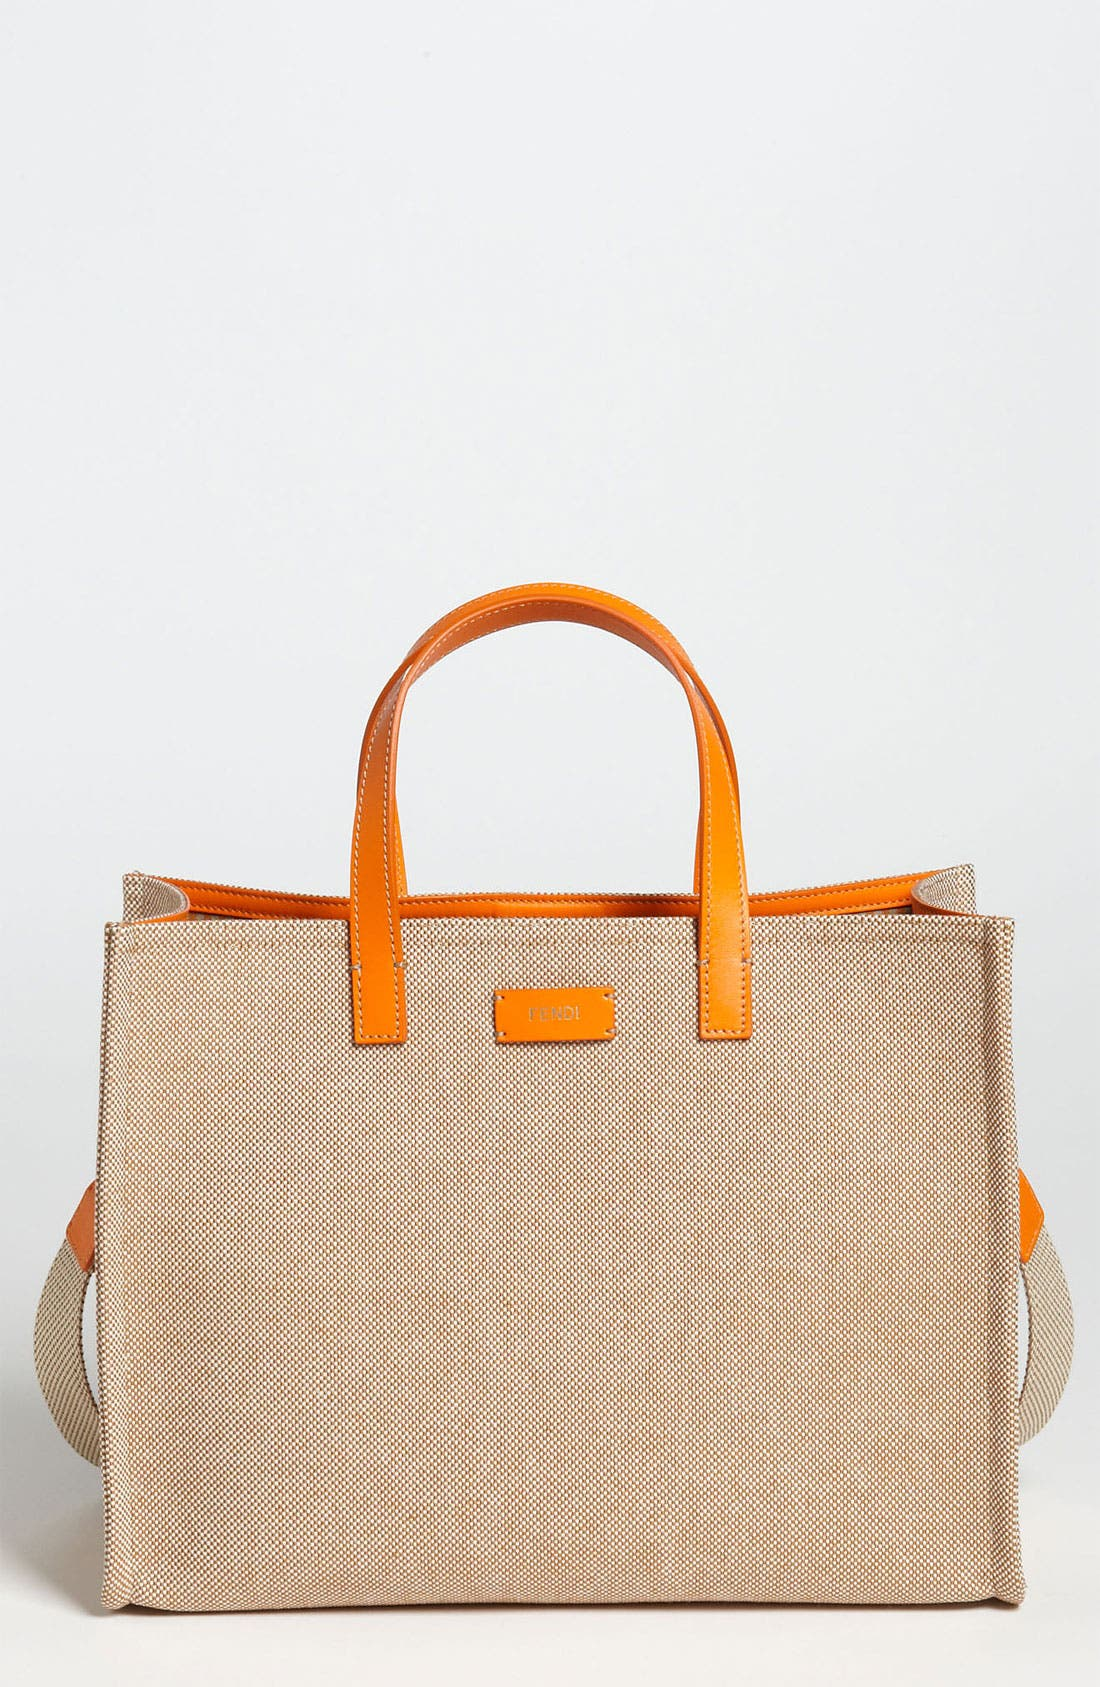 Main Image - Fendi 'Small Karl' Canvas Tote